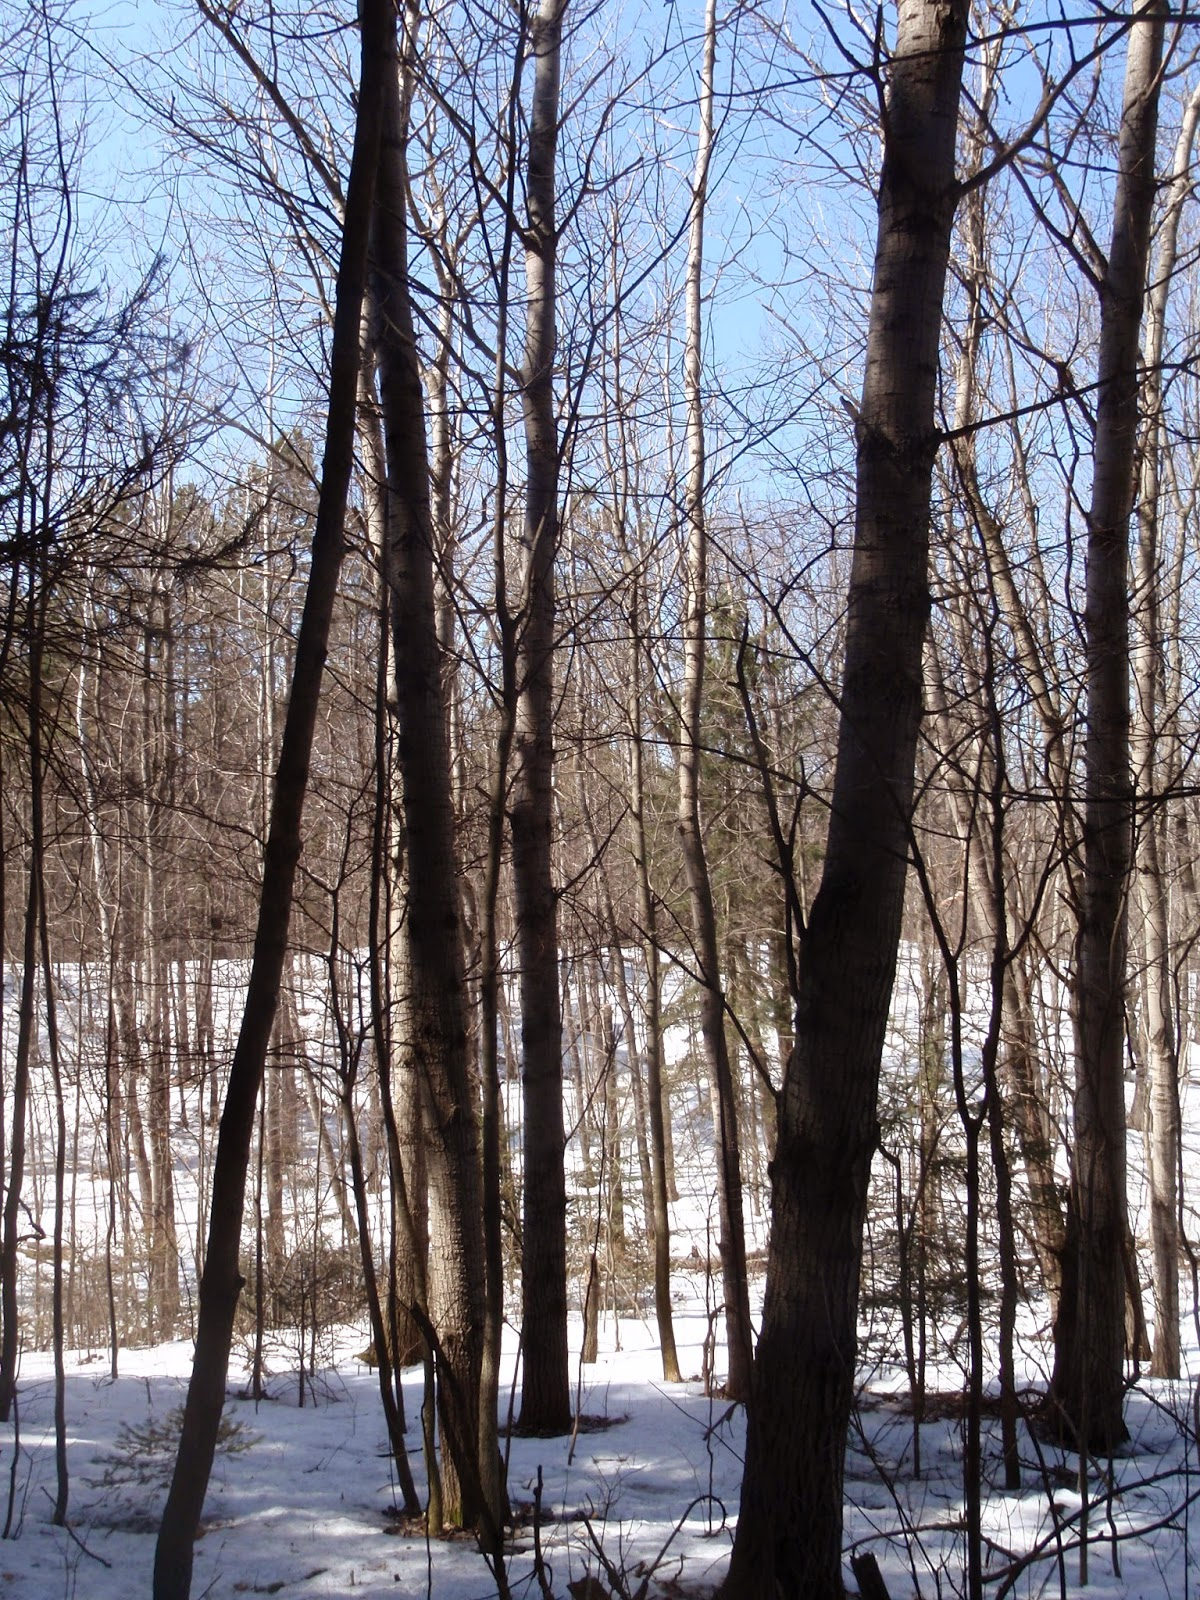 Ice Age Trail - Northern Kettle Moraine - Greenbush Rec Area